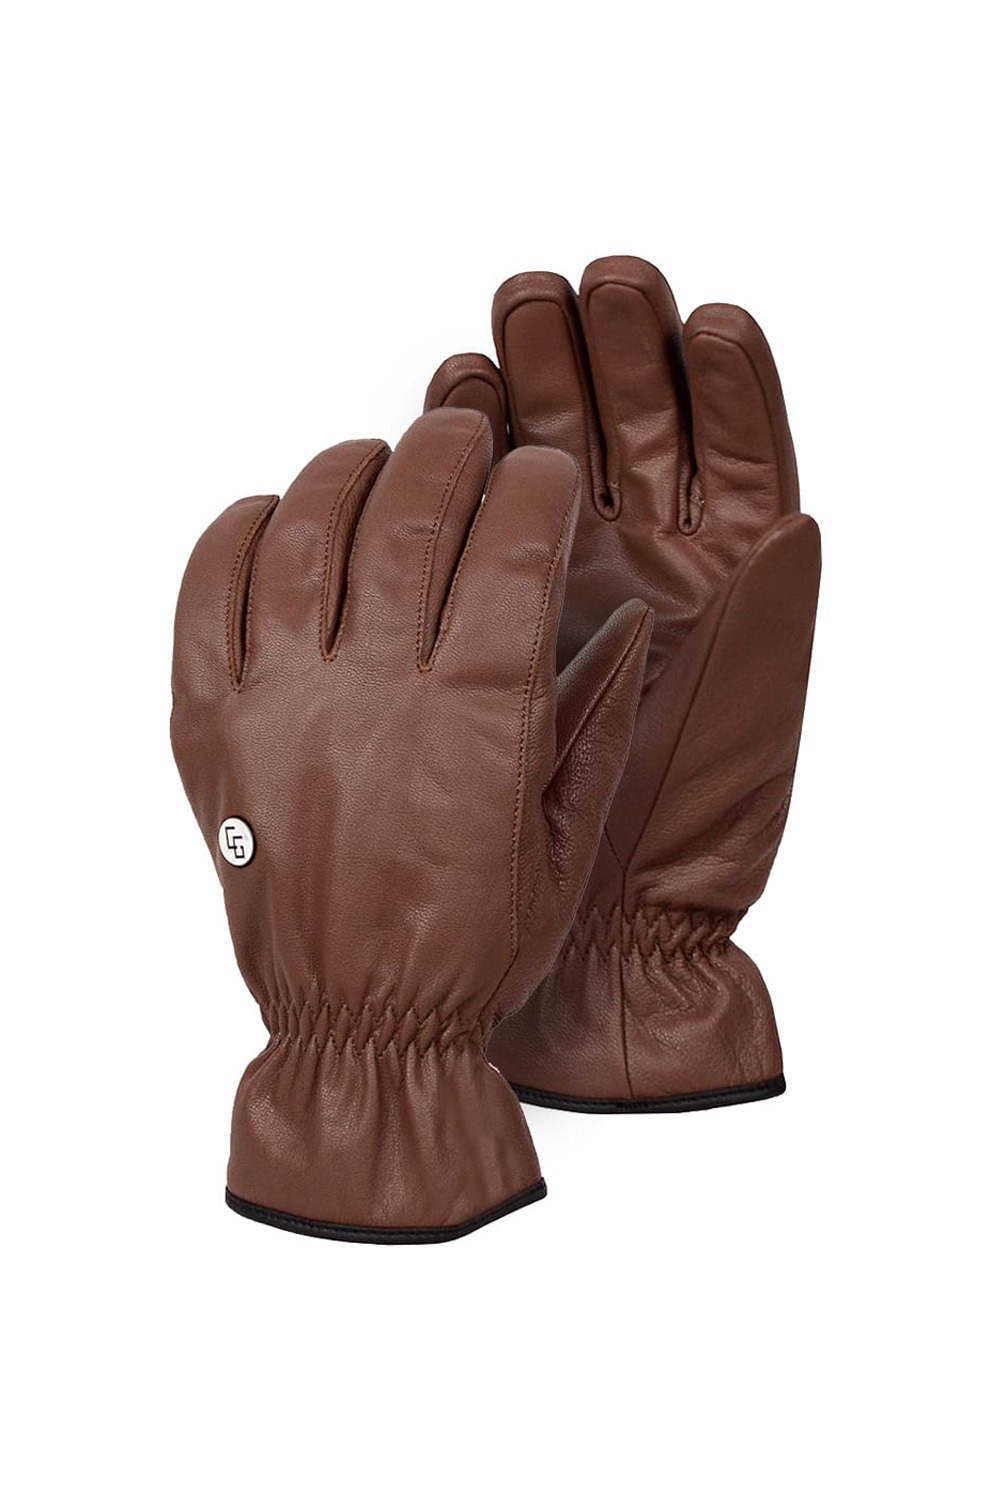 캔디그라인드 글러브 DCG703BW / MUSTANG BROWN CANDYGRIND GAME CHANGER GLOVE_ADCG703BW